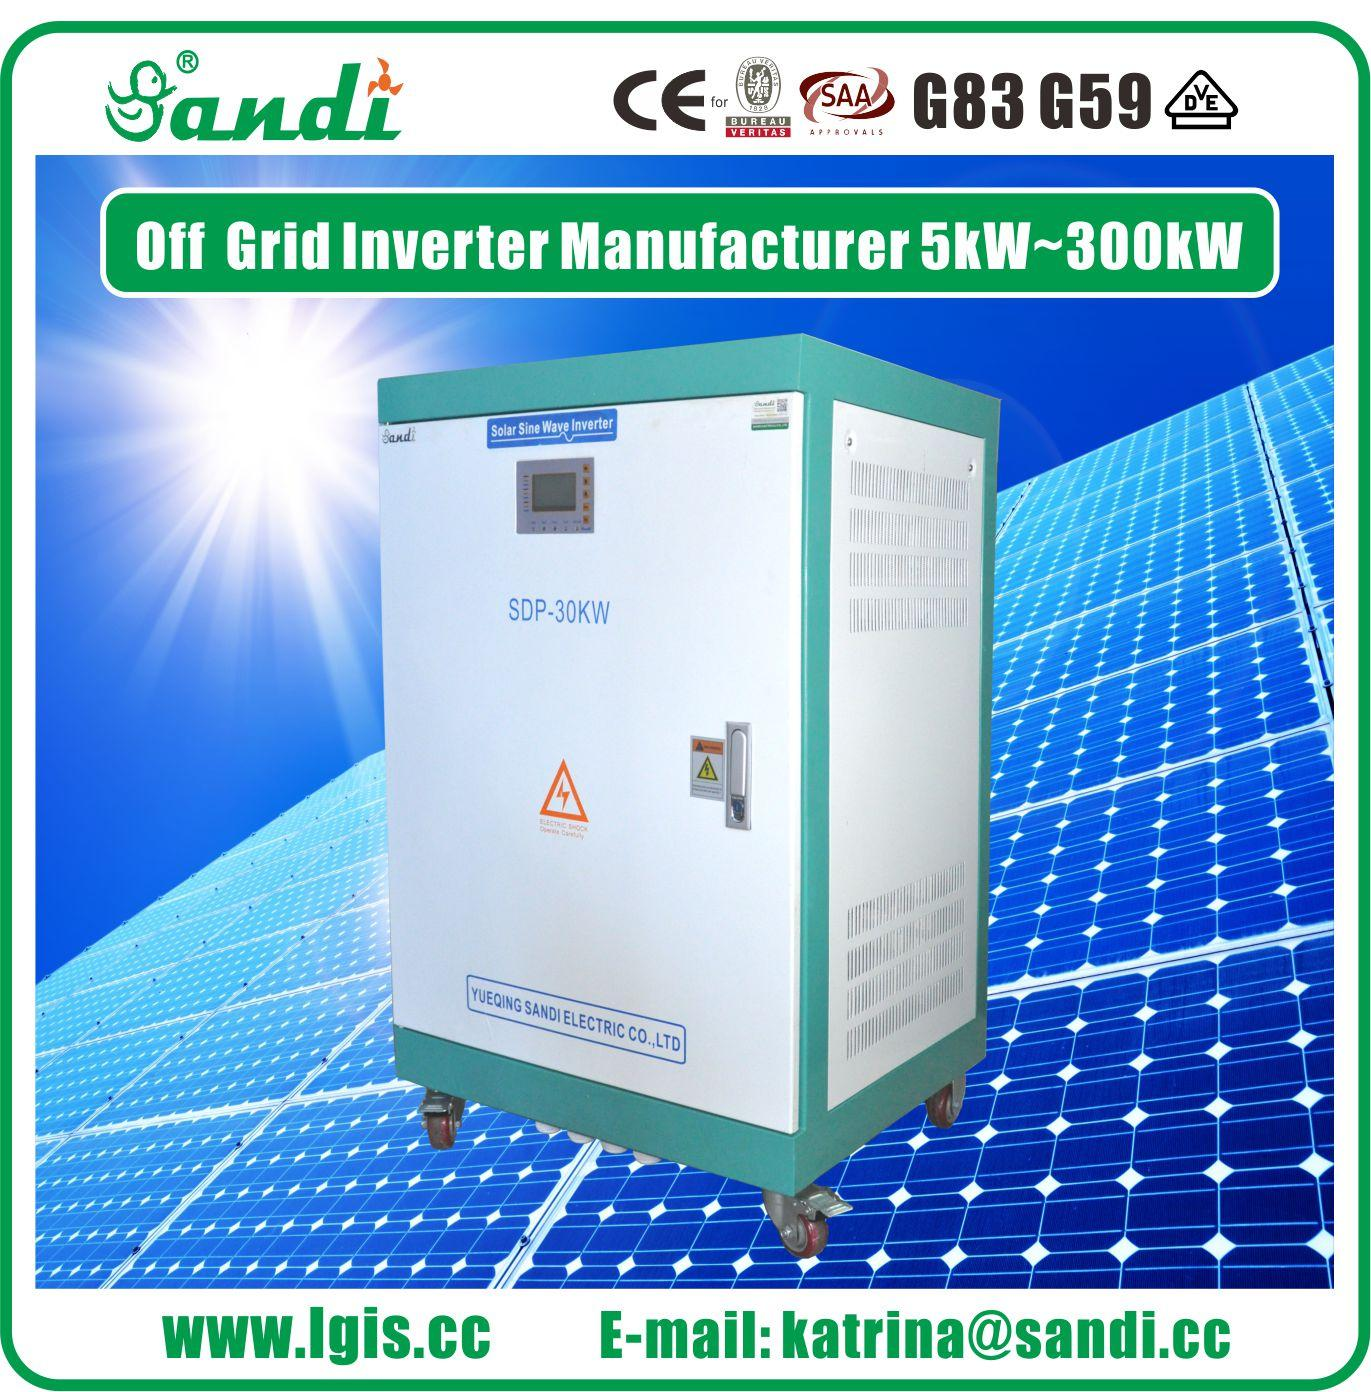 boat/vehicle/ship power inverter